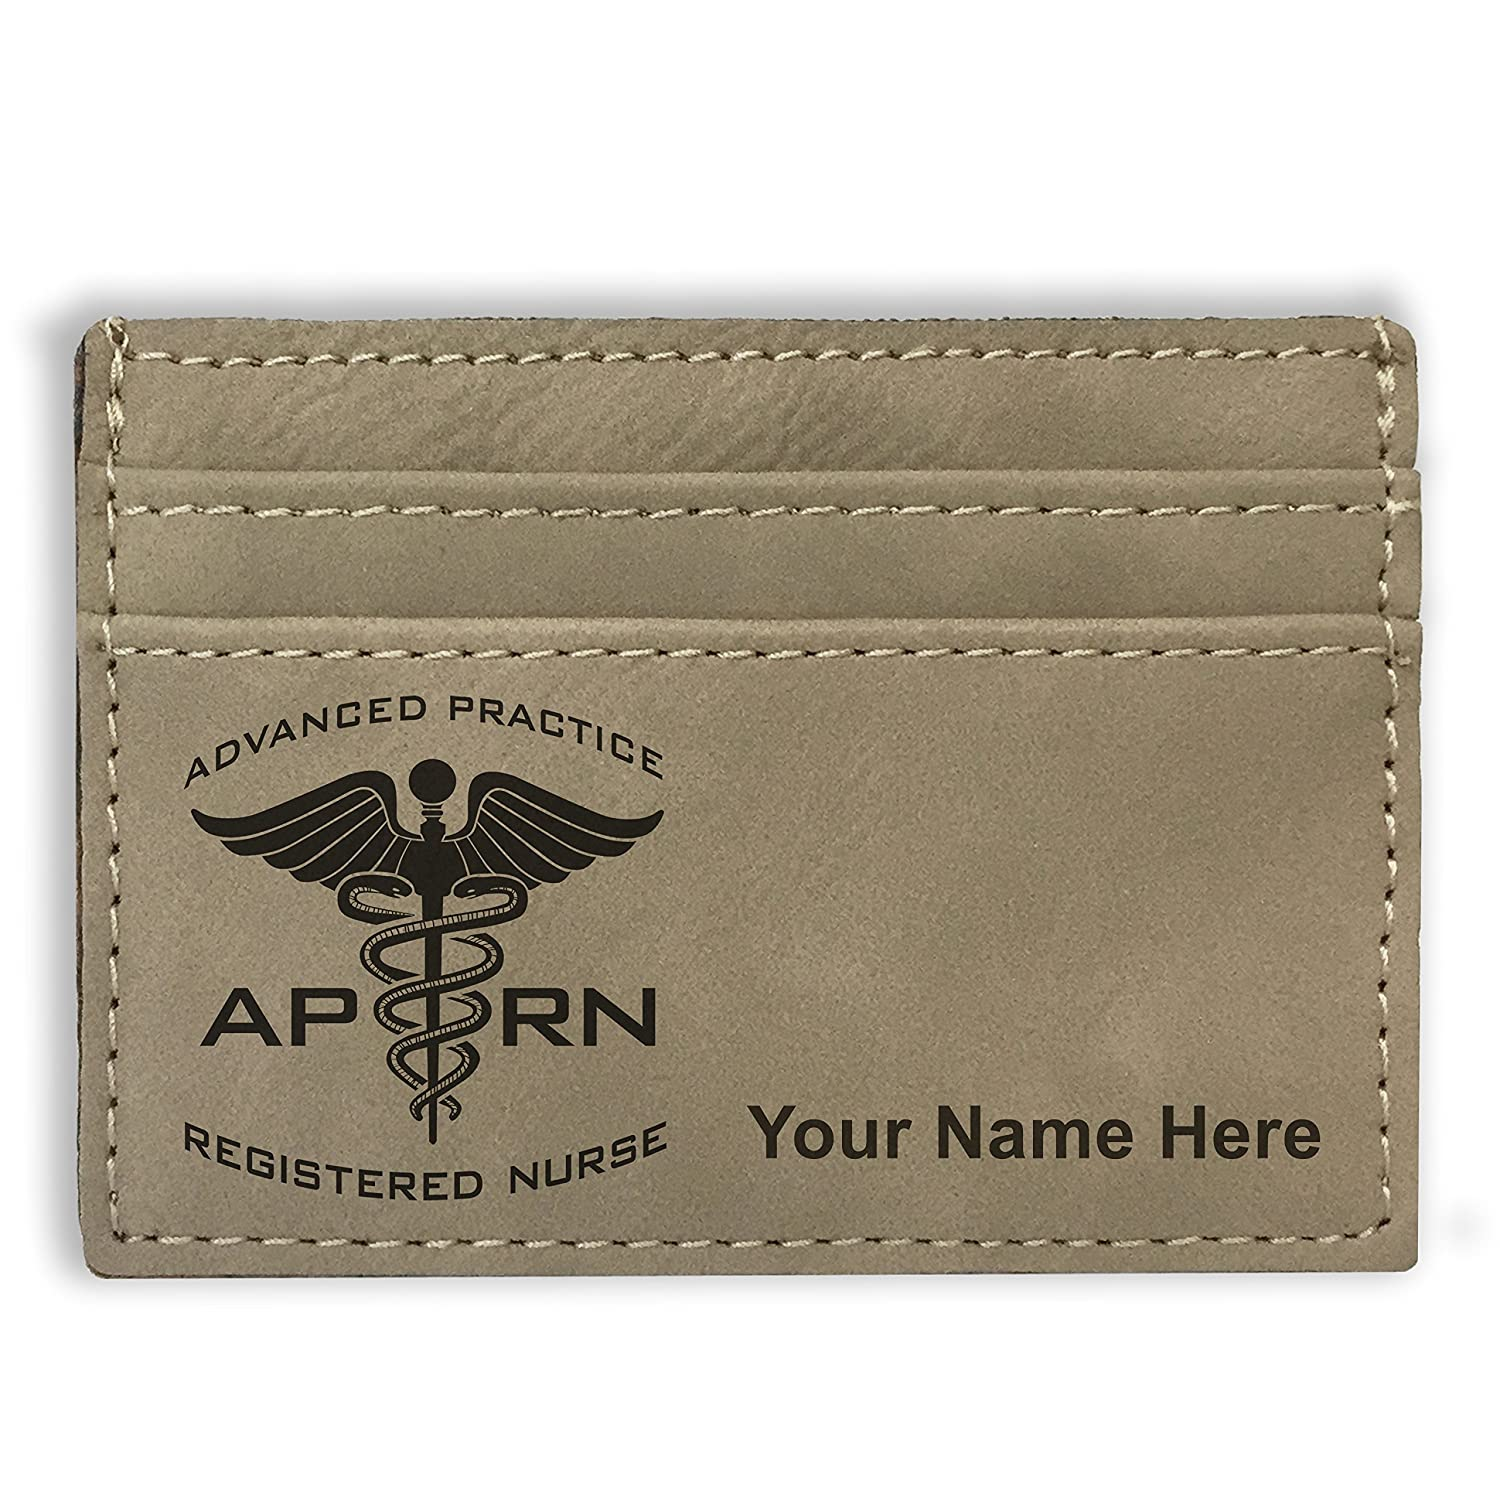 Personalized Engraving Included Money Clip Wallet APRN Advanced Practice Registered Nurse